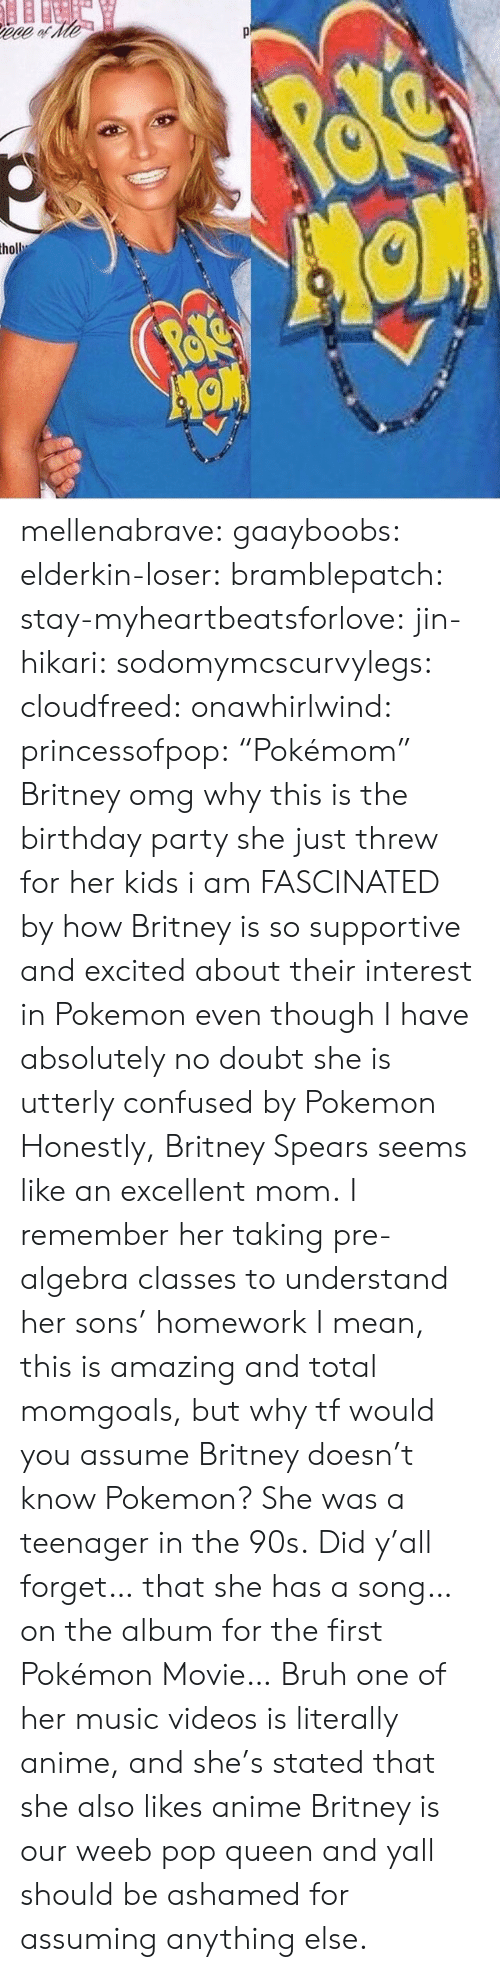 "Anime, Birthday, and Britney Spears: mellenabrave:  gaayboobs:  elderkin-loser:   bramblepatch:   stay-myheartbeatsforlove:  jin-hikari:  sodomymcscurvylegs:  cloudfreed:  onawhirlwind:  princessofpop:  ""Pokémom""  Britney omg why     this is the birthday party she just threw for her kids i am FASCINATED by how Britney is so supportive and excited about their interest in Pokemon even though I have absolutely no doubt she is utterly confused by Pokemon  Honestly, Britney Spears seems like an excellent mom.   I remember her taking pre-algebra classes to understand her sons' homework   I mean, this is amazing and total momgoals, but why tf would you assume Britney doesn't know Pokemon? She was a teenager in the 90s.   Did y'all forget… that she has a song… on the album for the first Pokémon Movie…   Bruh one of her music videos is literally anime, and she's stated that she also likes anime   Britney is our weeb pop queen and yall should be ashamed for assuming anything else."